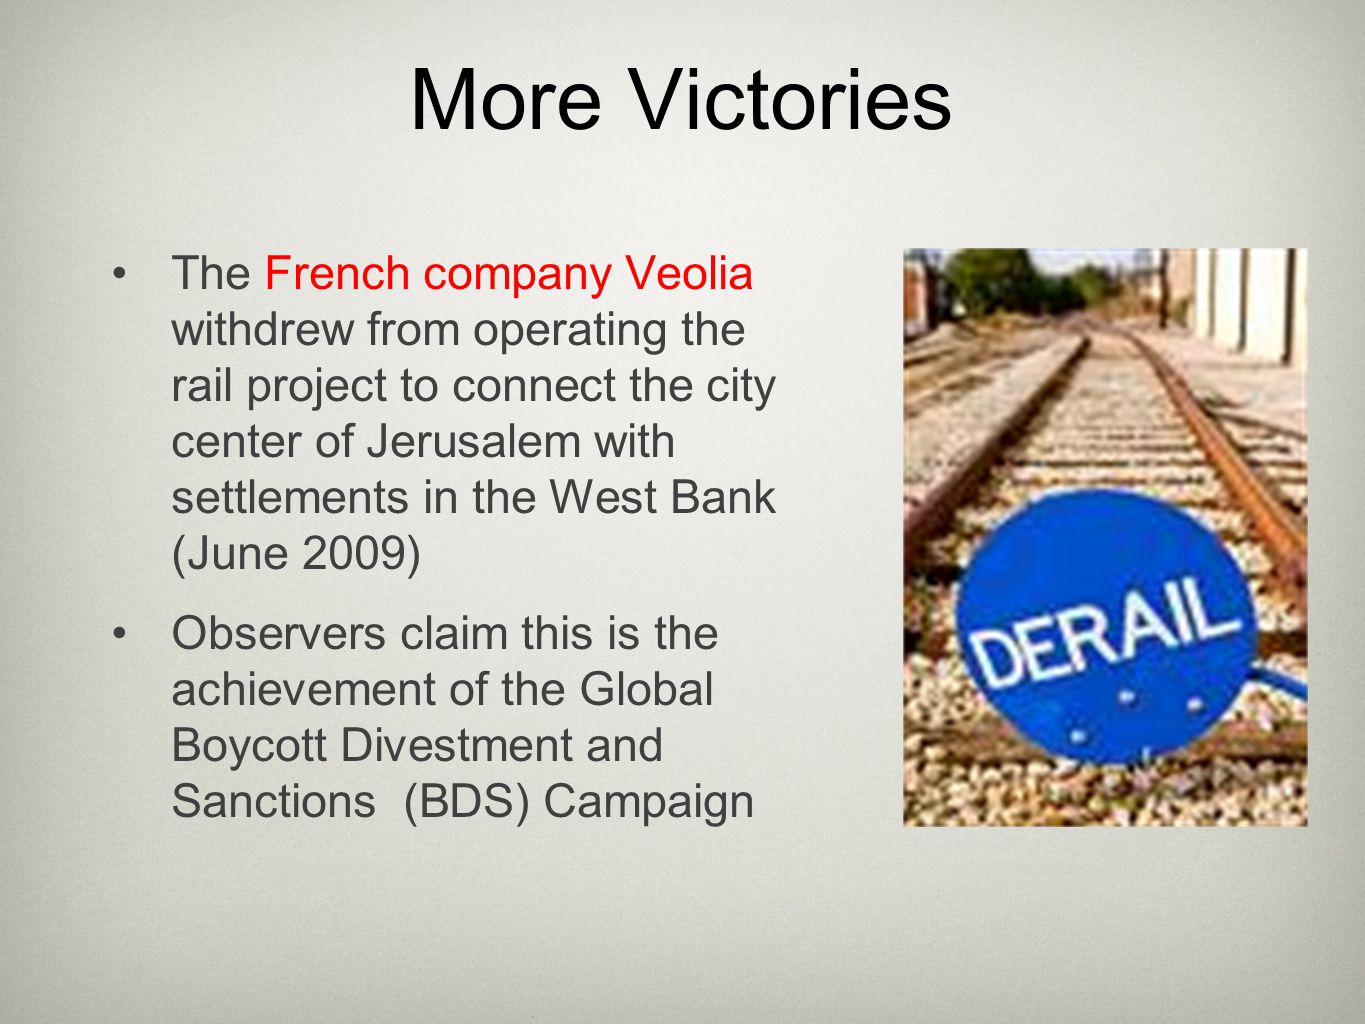 More Victories The French company Veolia withdrew from operating the rail project to connect the city center of Jerusalem with settlements in the West Bank (June 2009) Observers claim this is the achievement of the Global Boycott Divestment and Sanctions (BDS) Campaign